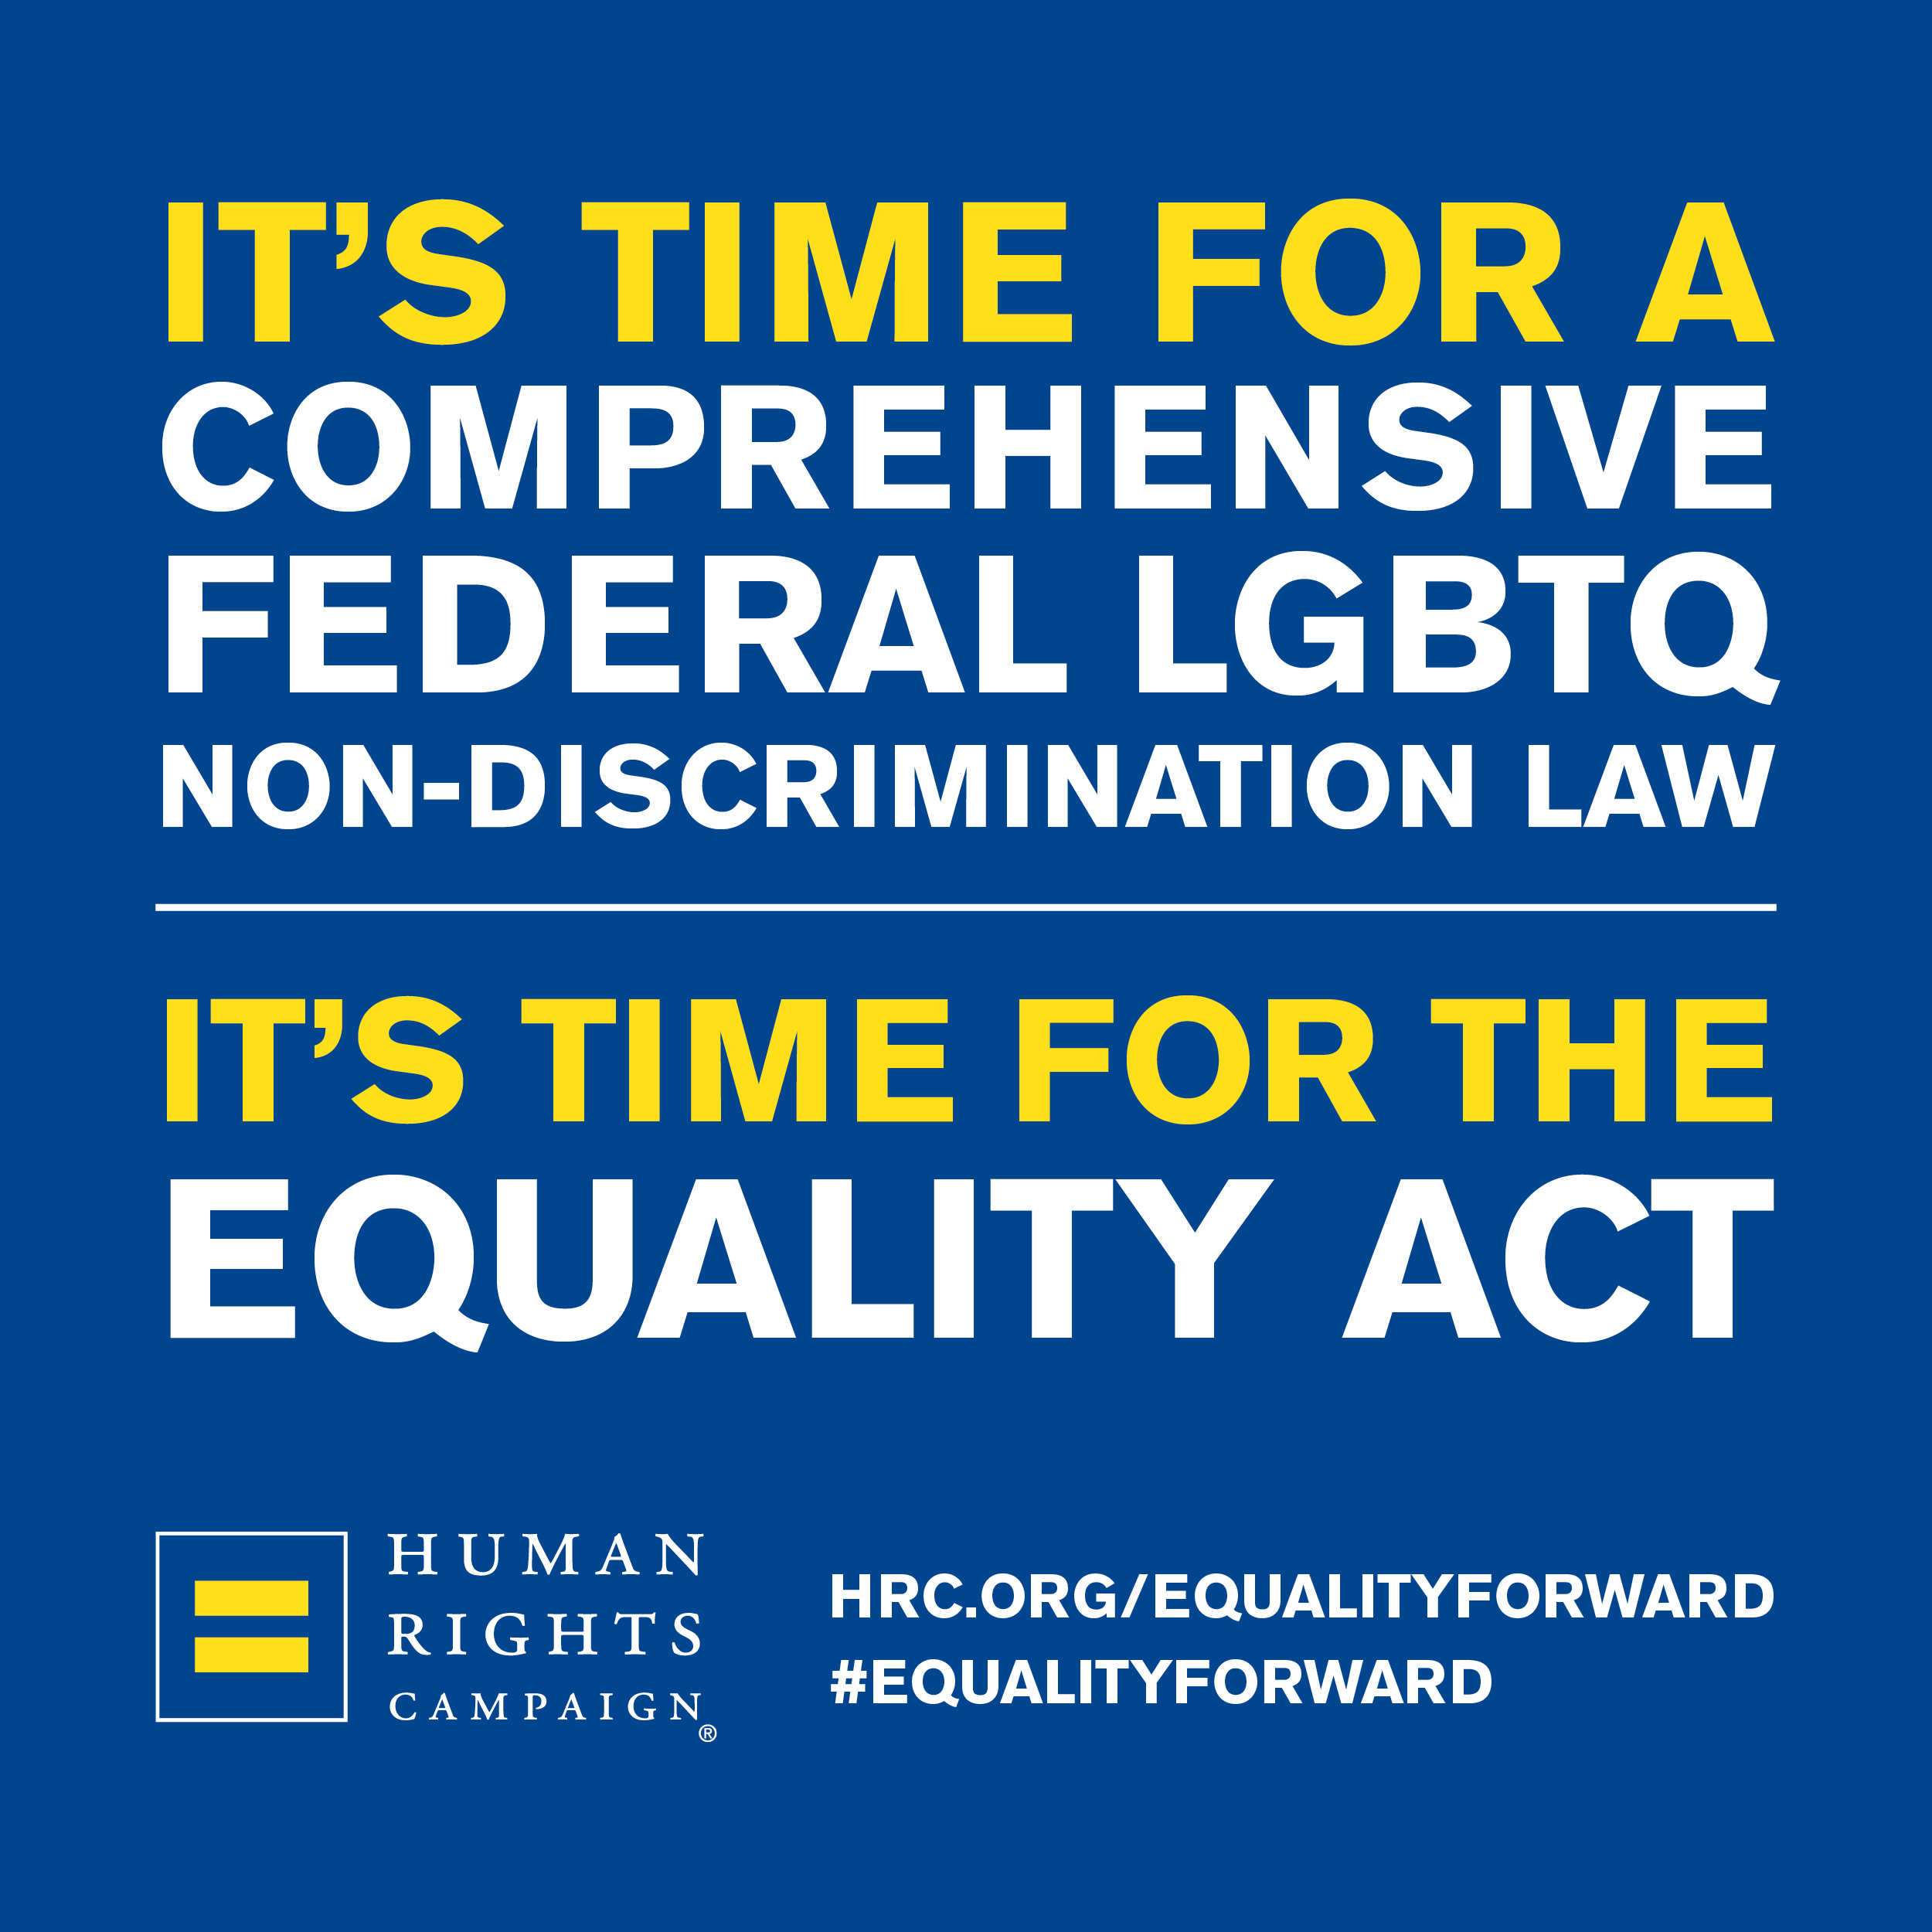 HP Supports the Equality Act